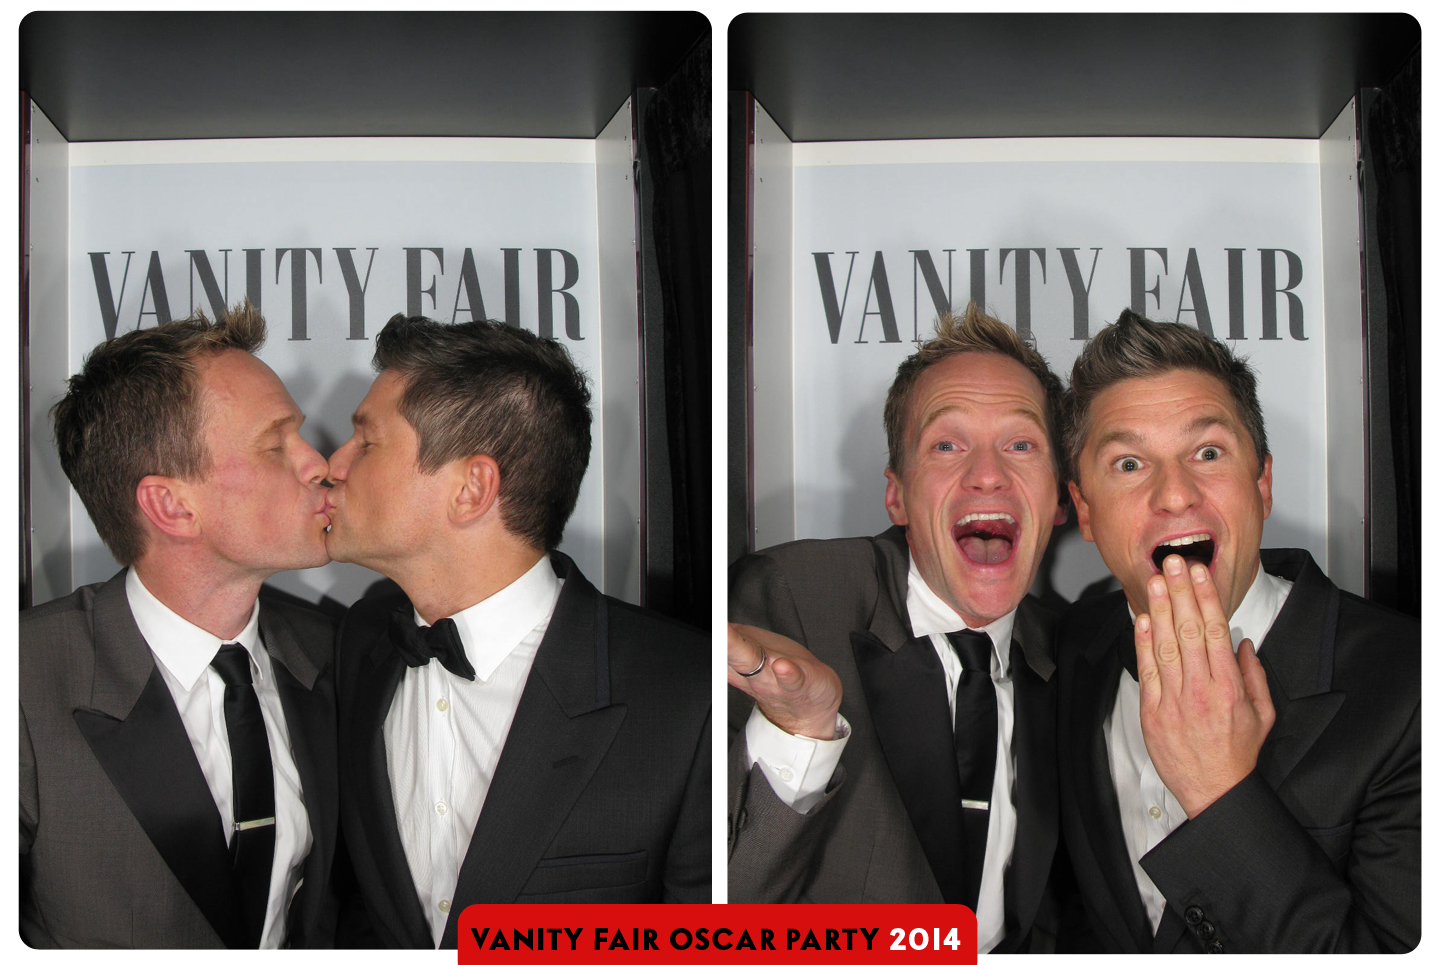 5315484e257313775447deec_ss03-neil-patrick-harris-vanity-fair-photo-booth.png